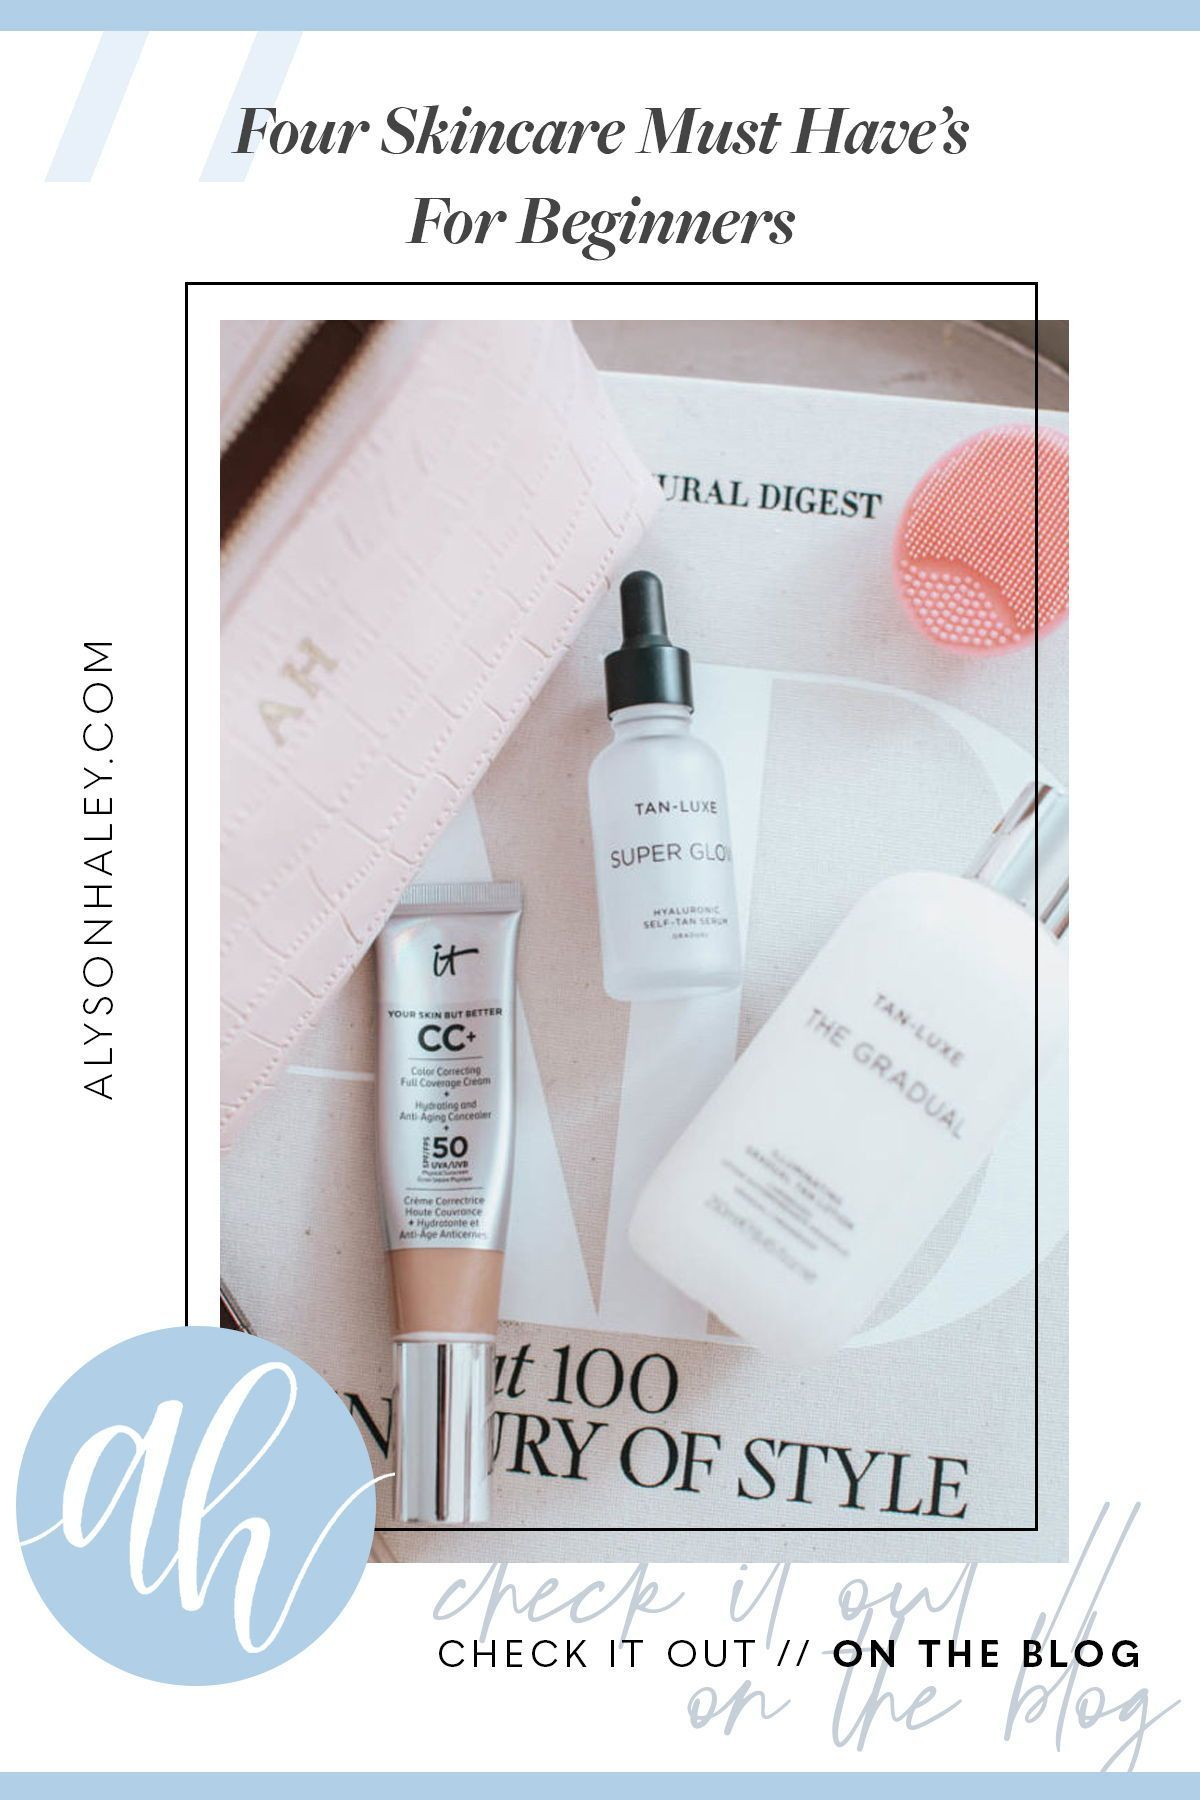 Four Skincare Must Have's For Beginners Alyson Haley in